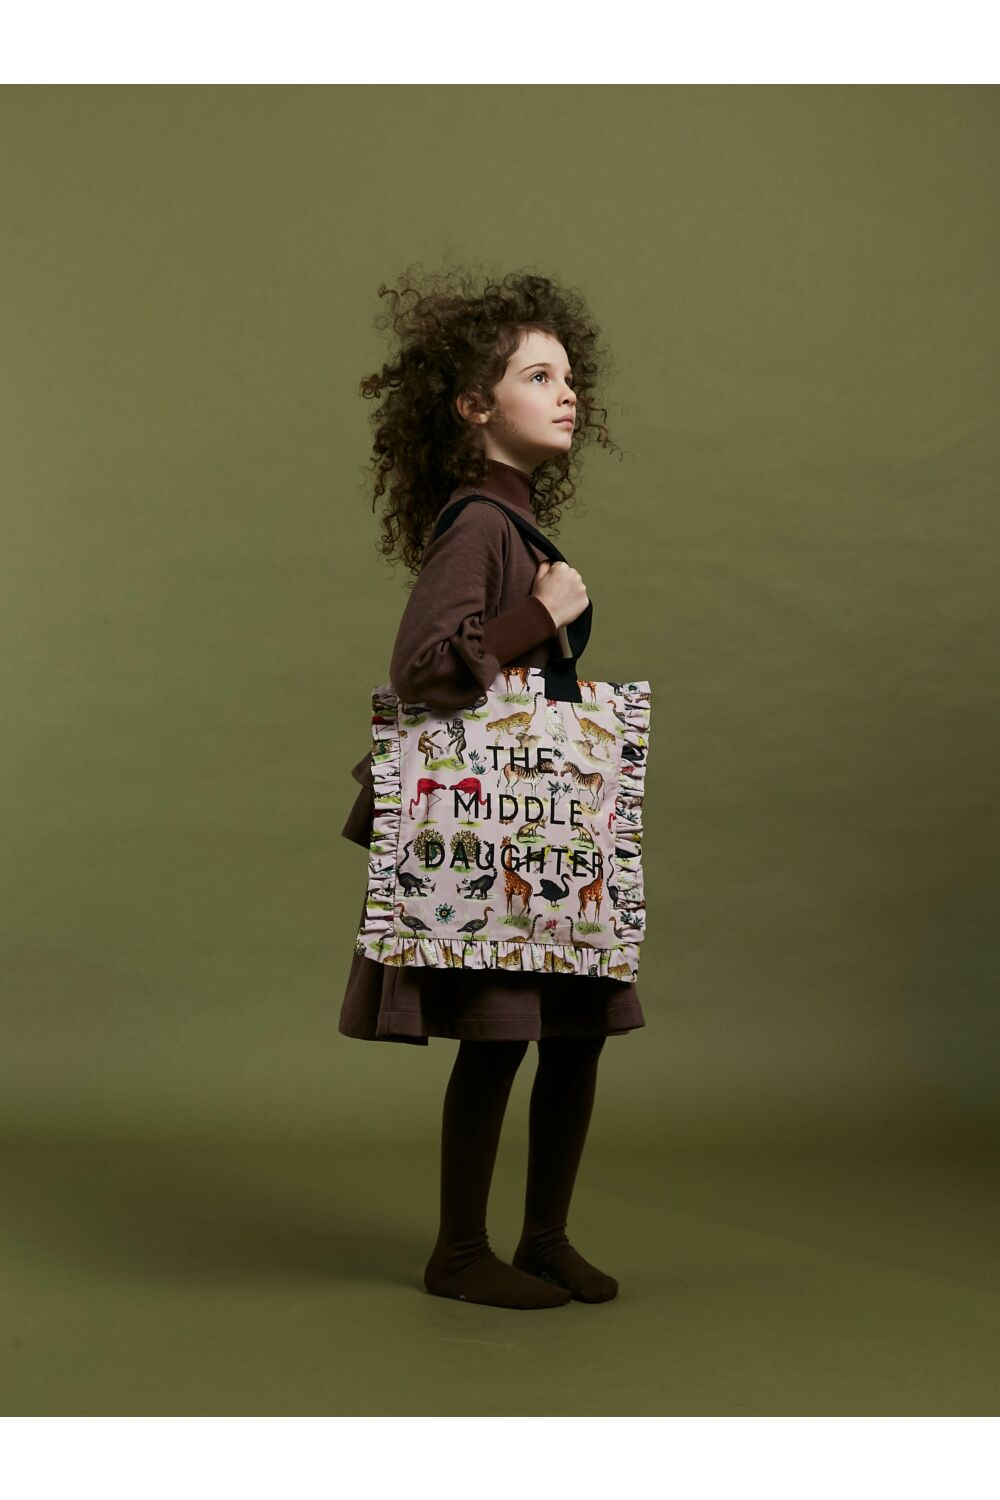 YOU'RE TOTE-ALLY INDISPENSABLE (AND FRILLING)